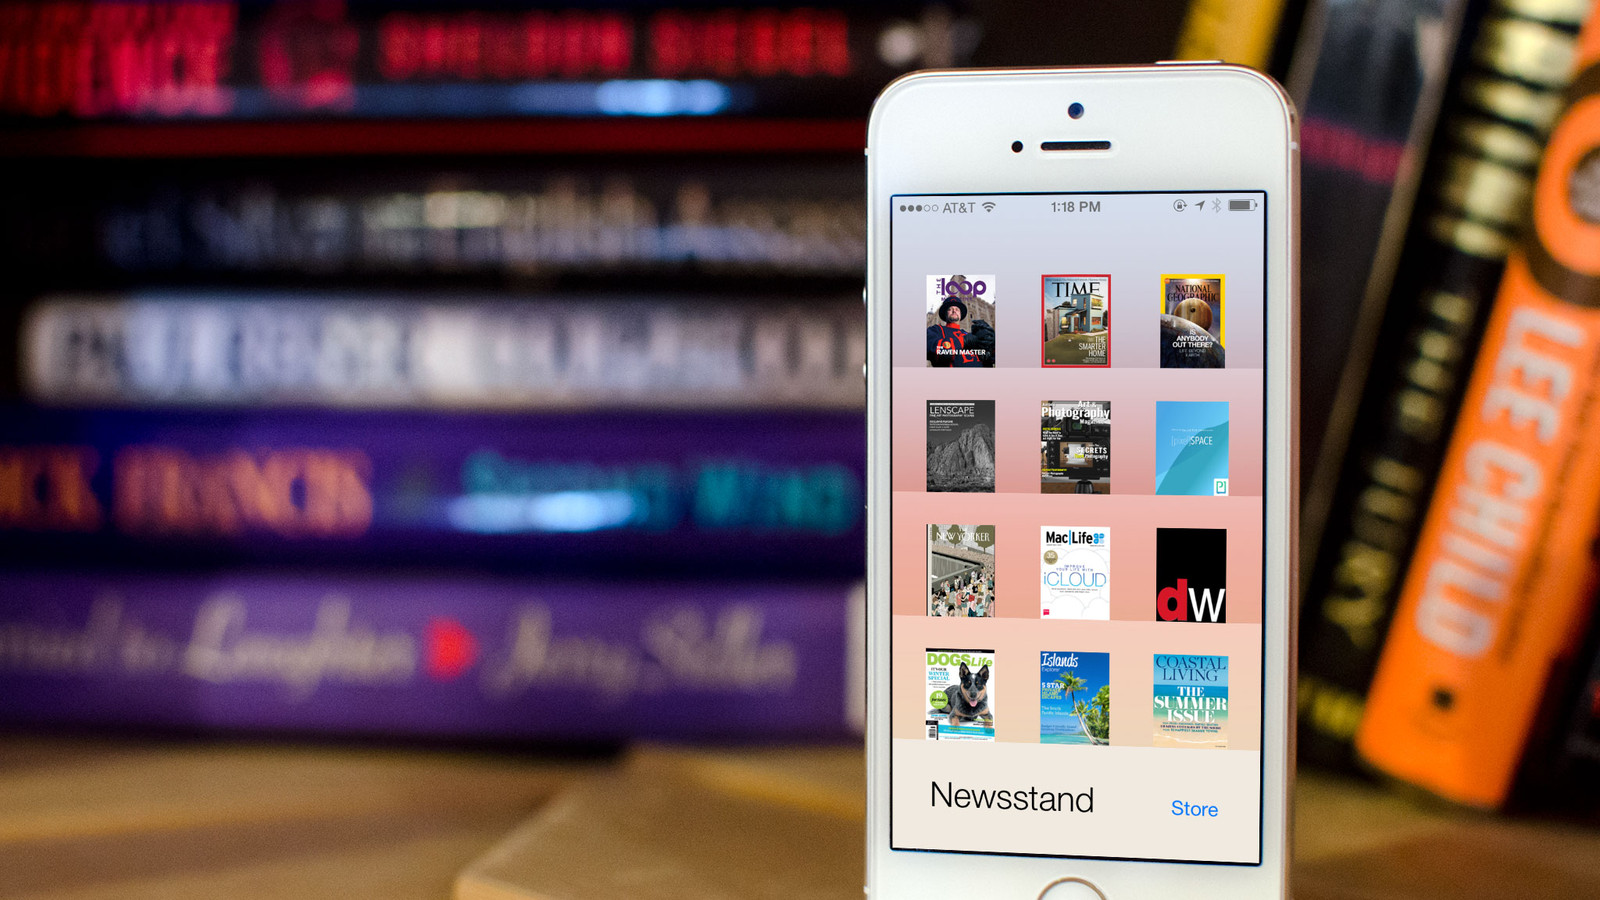 How to enable automatic downloads for Newsstand publications